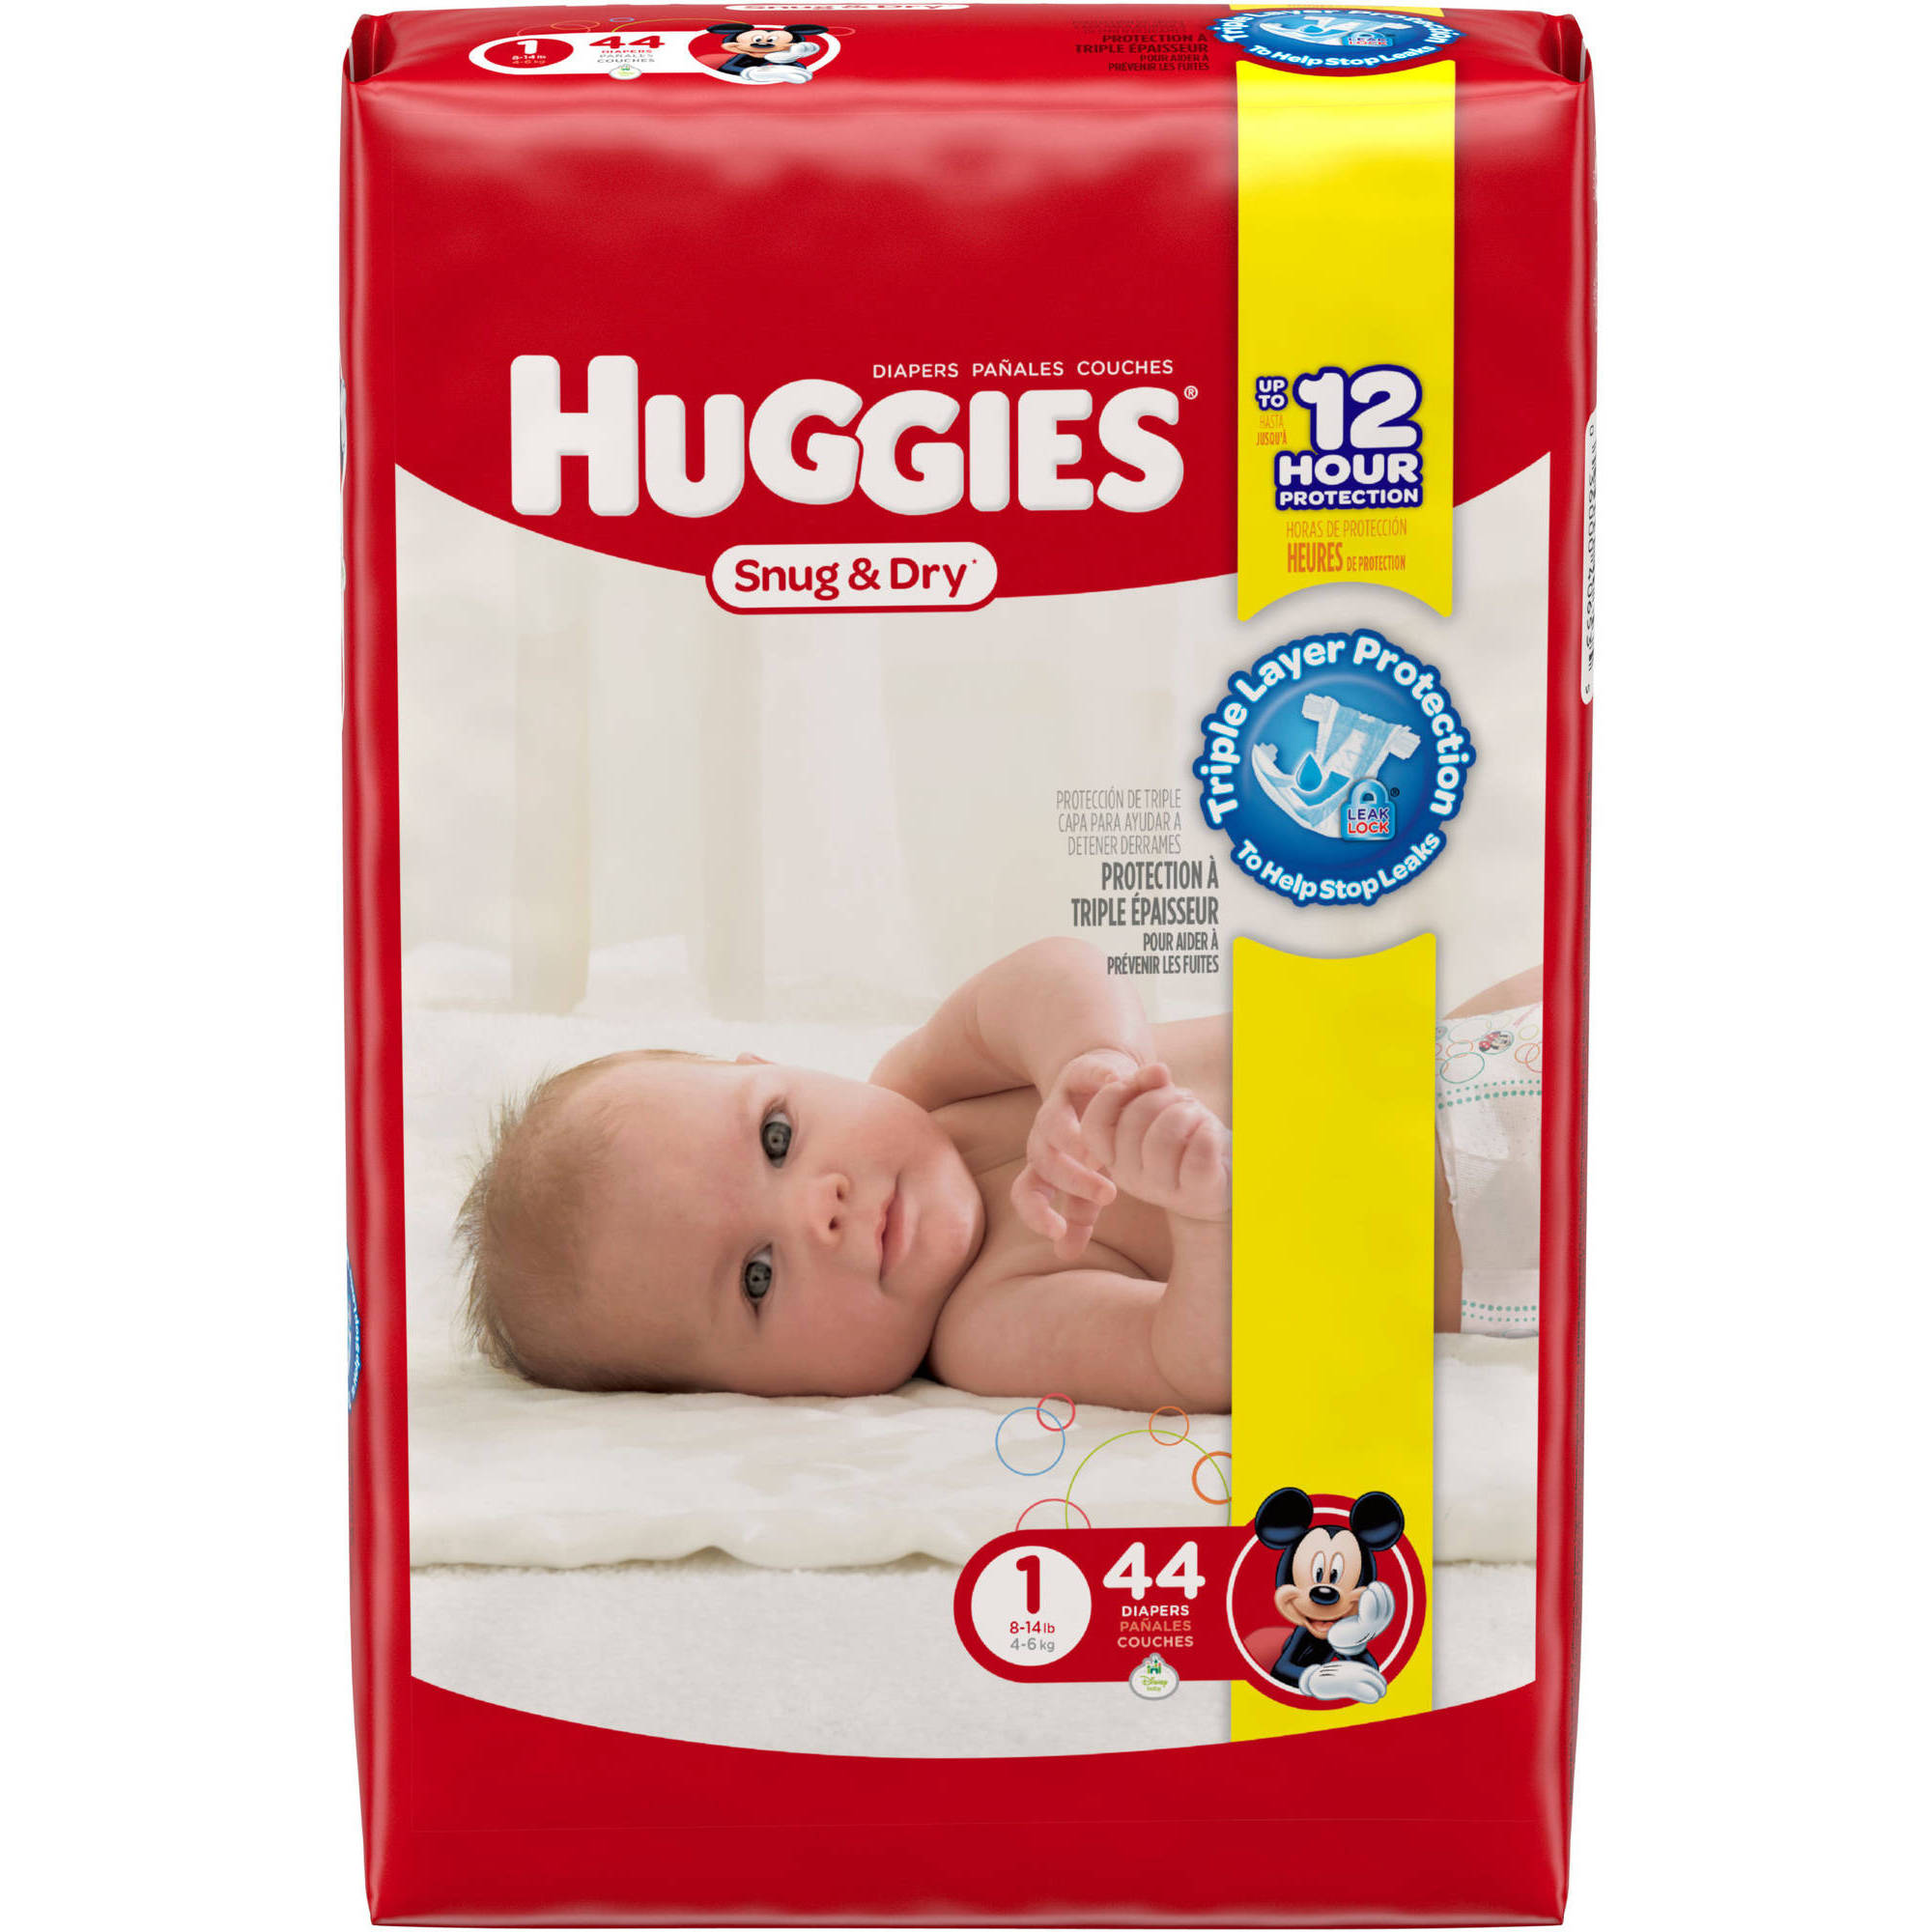 HUGGIES Snug & Dry Diapers Jumbo Pack (Choose Your Size)